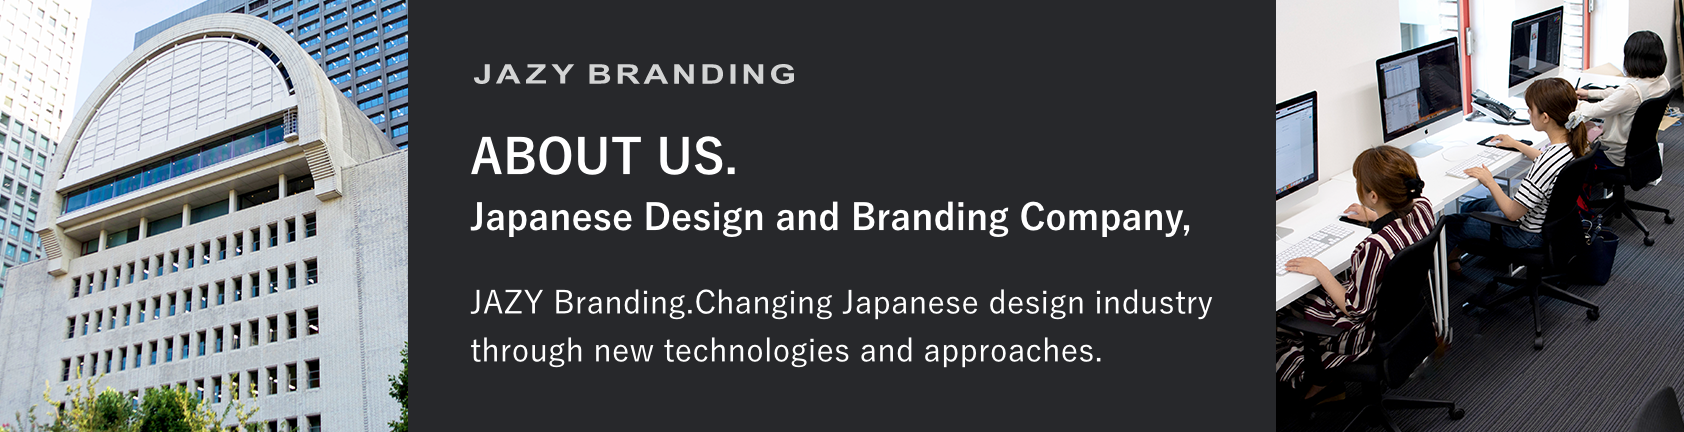 ABOUT US.Japanese Design and Branding Company,JAZY Branding.Changing Japanese design industry through new technologies and approaches.